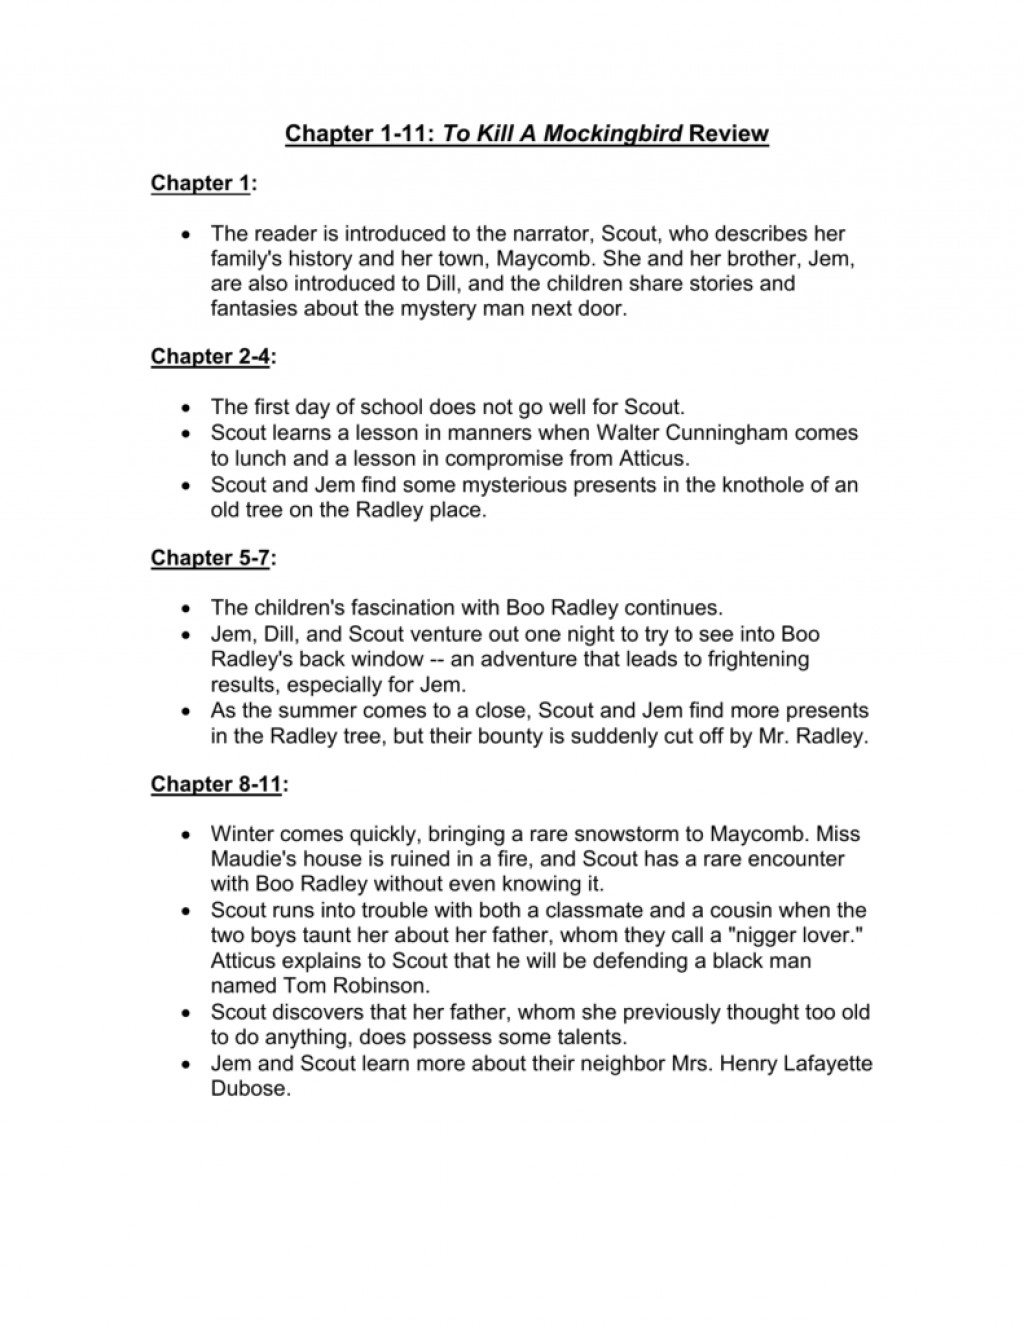 008 005916667 Essay Example Questions For To Kill Mockingbird Part Impressive A 1 Discussion Chapter 16 14 15 Large